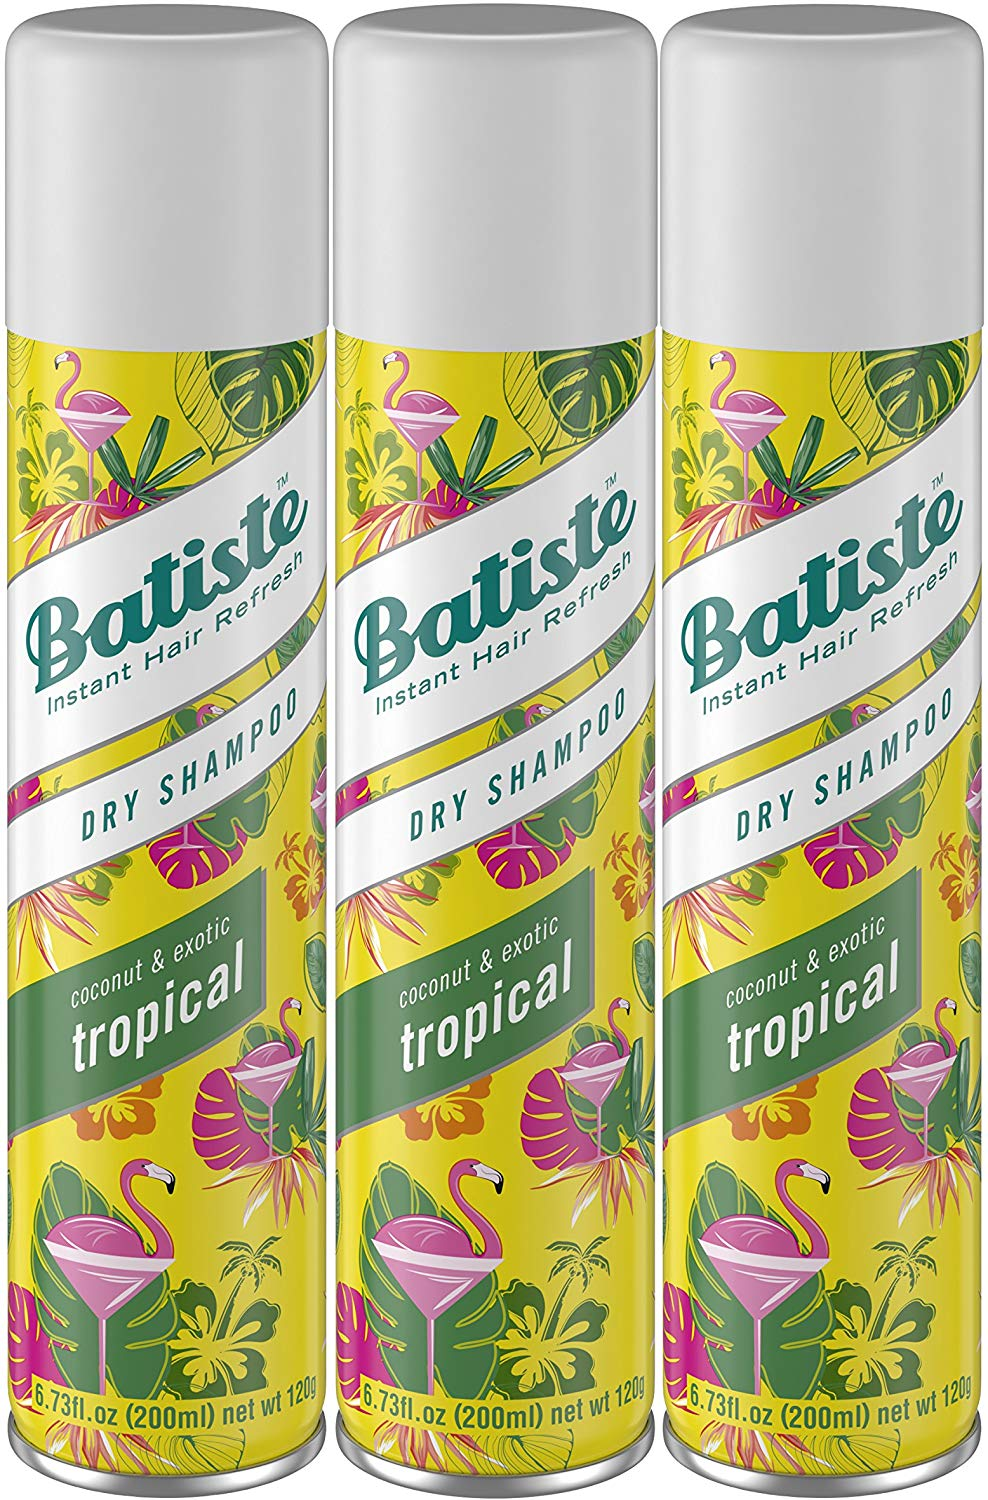 Batiste Dry Shampoo Tropical Fragrance 6.73 Fl Oz Pack of 3